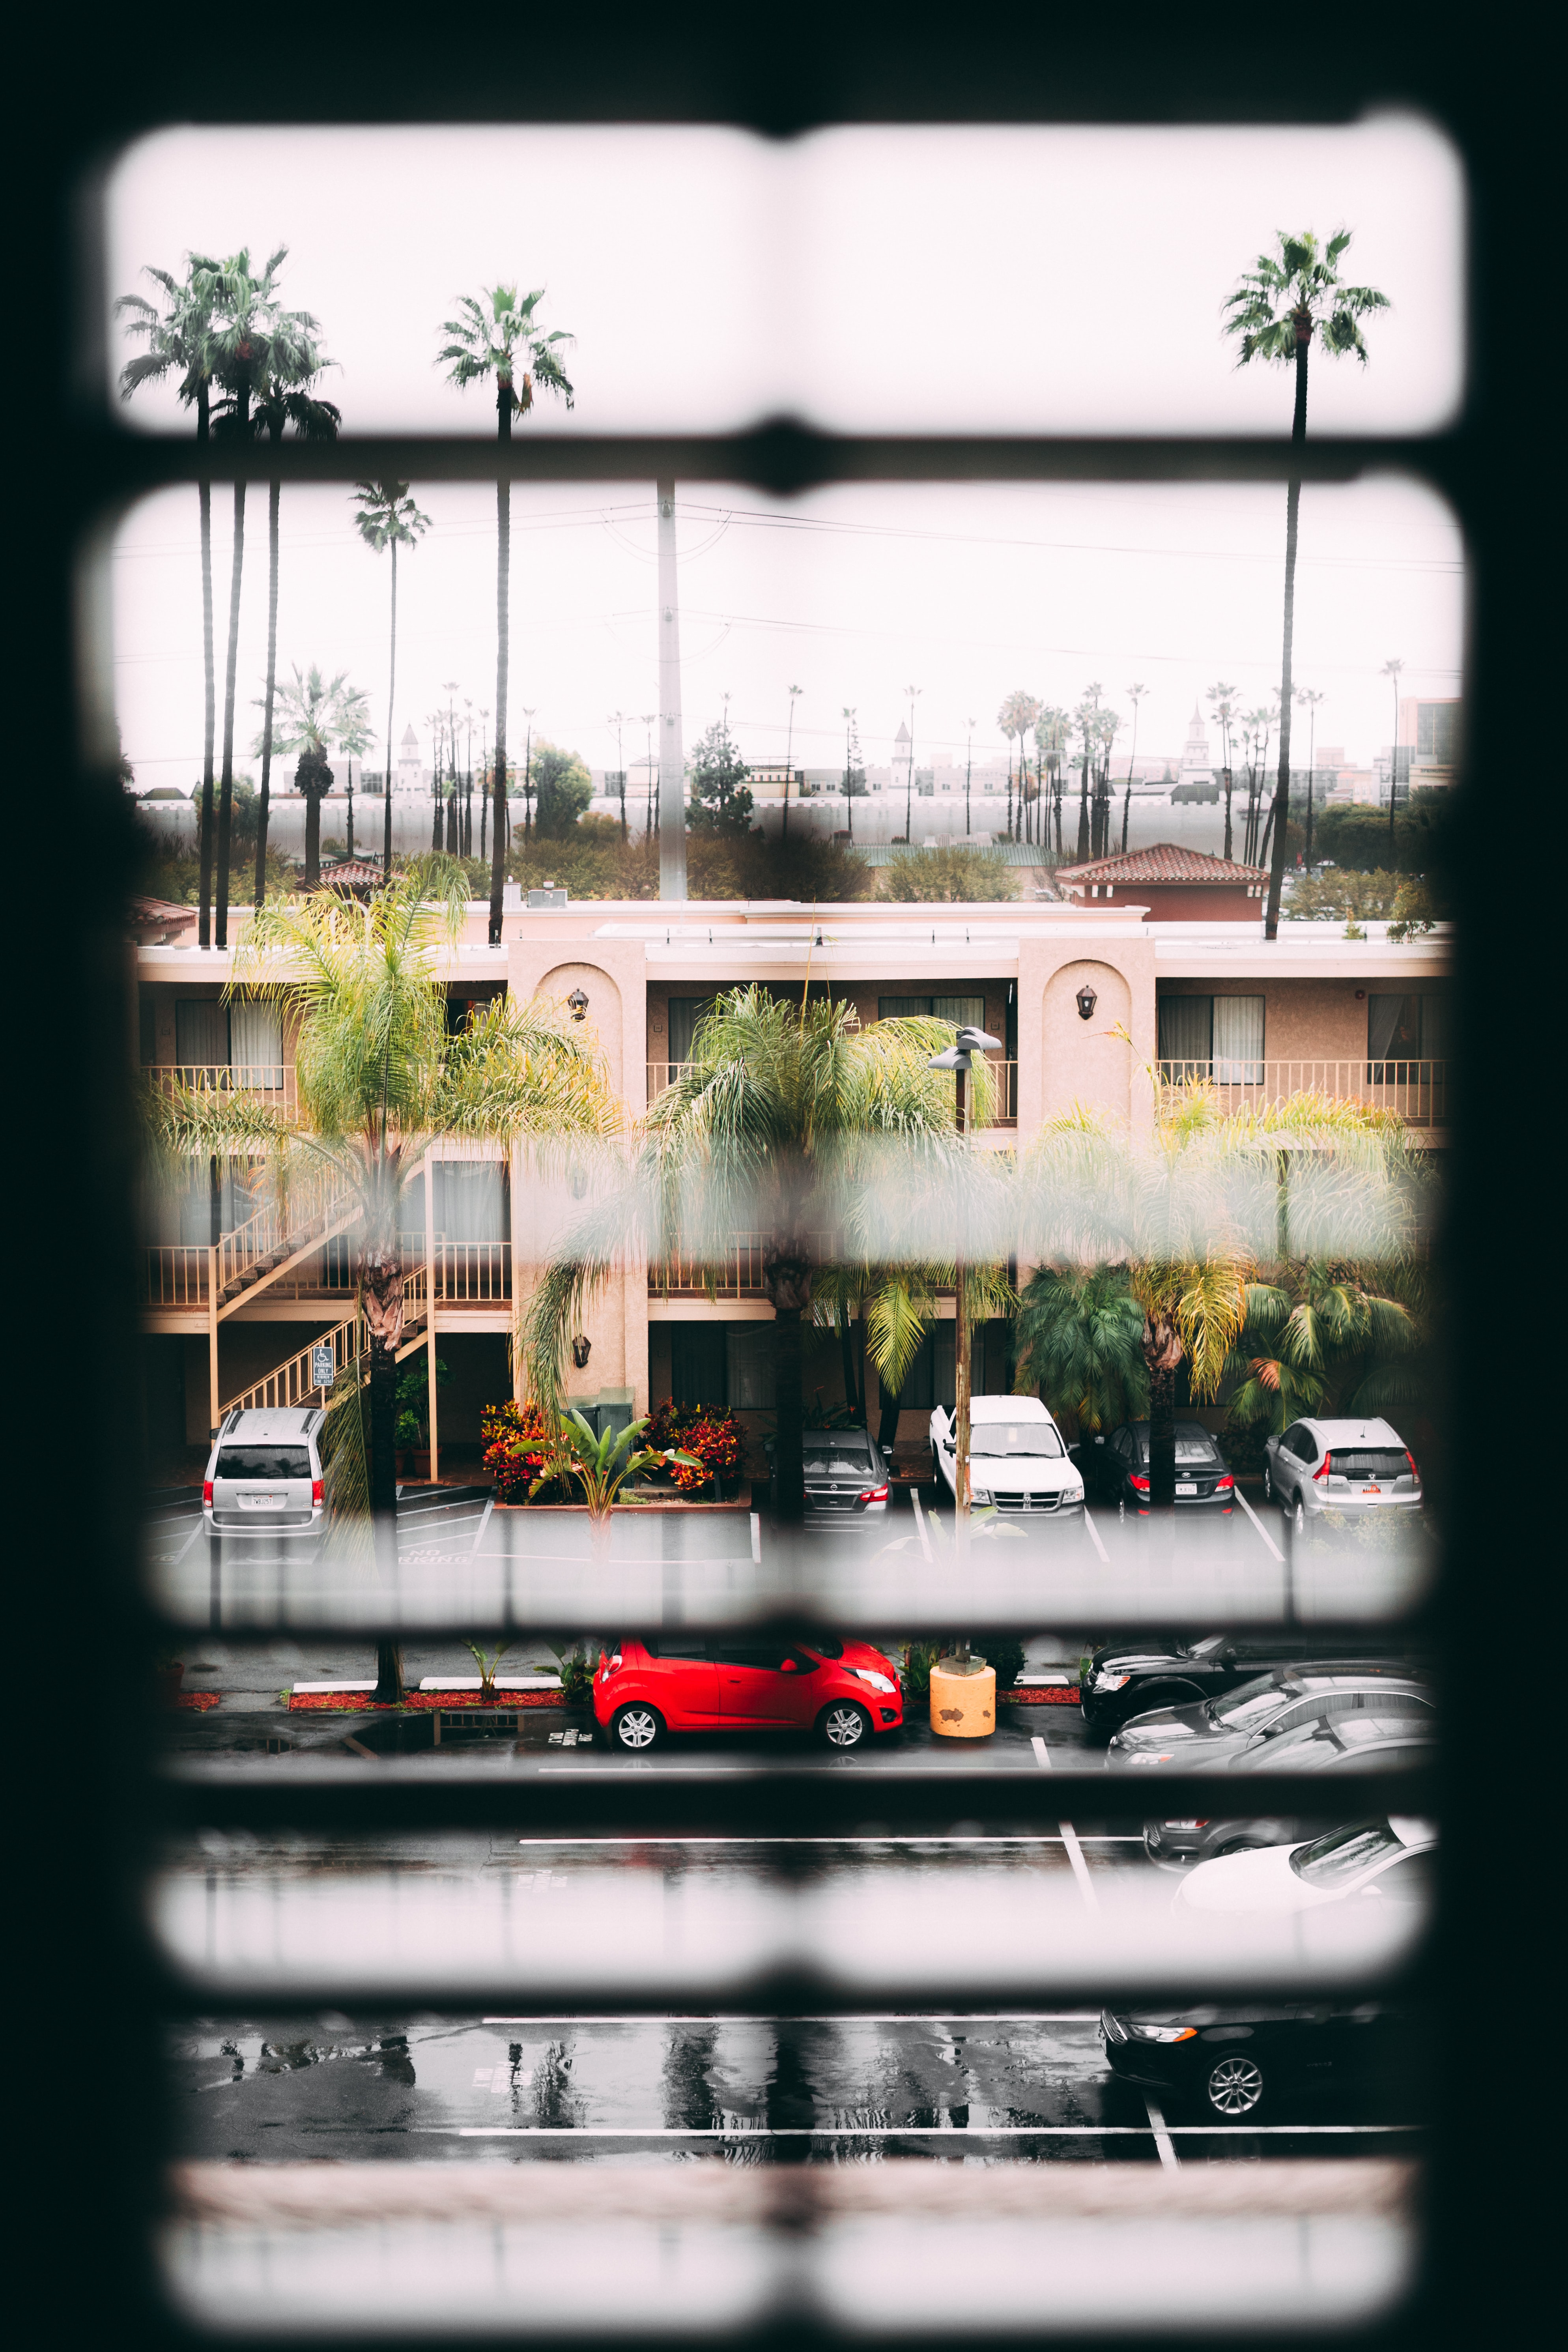 View through the window blinds on the parking lot, palm trees and two story residential building